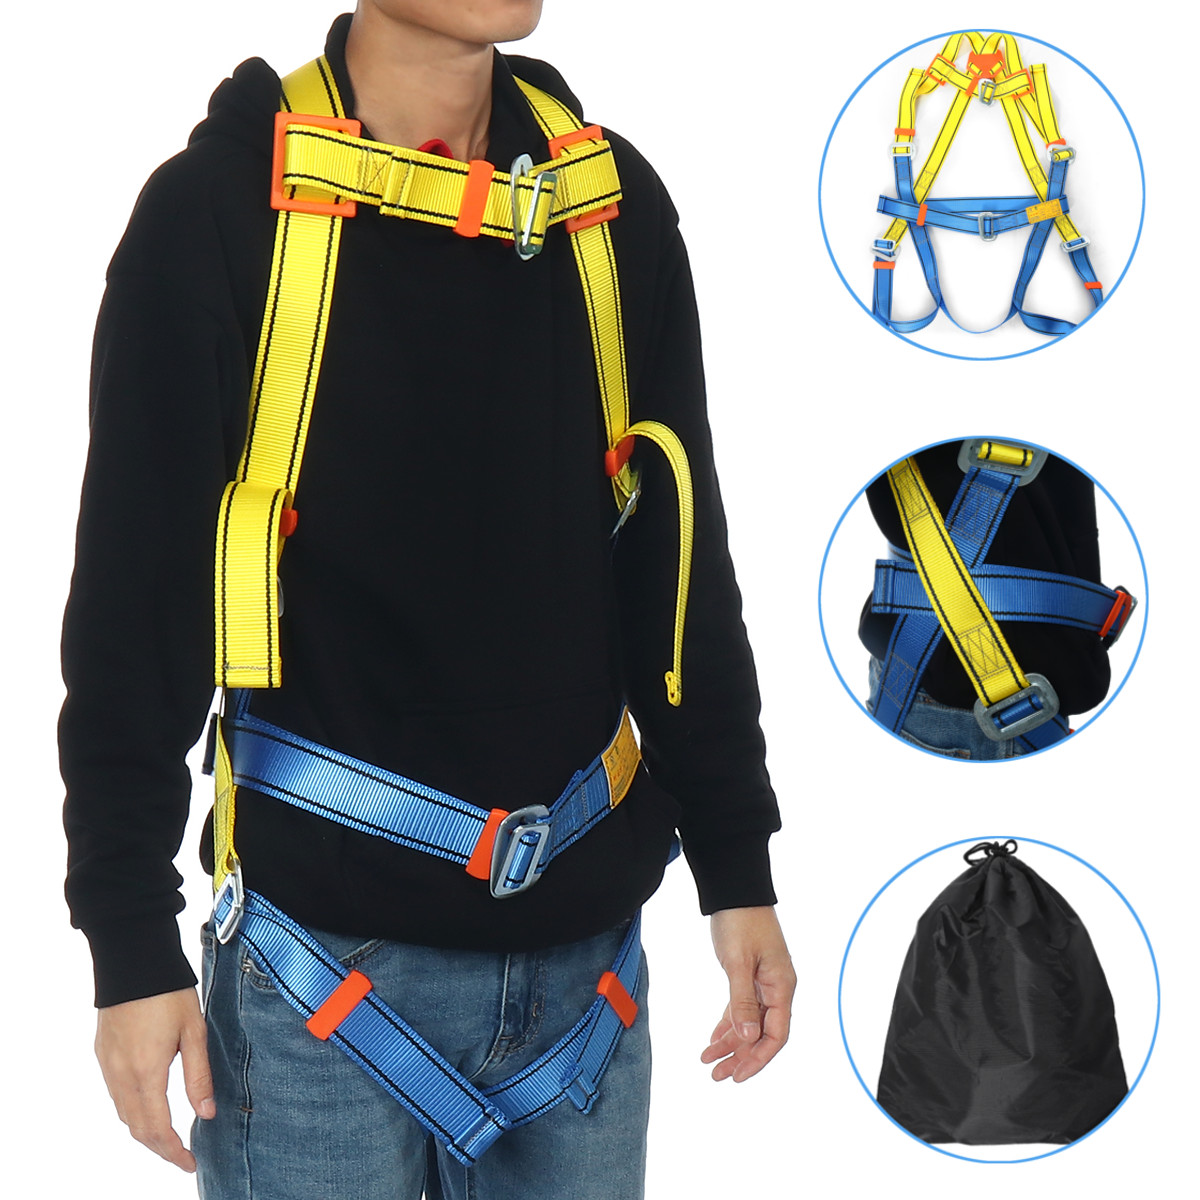 D-Ring Belt Working Fall Protective-Equipment Safety-Harness Roofing-Tool Industrial Construction Harness Full Body Type